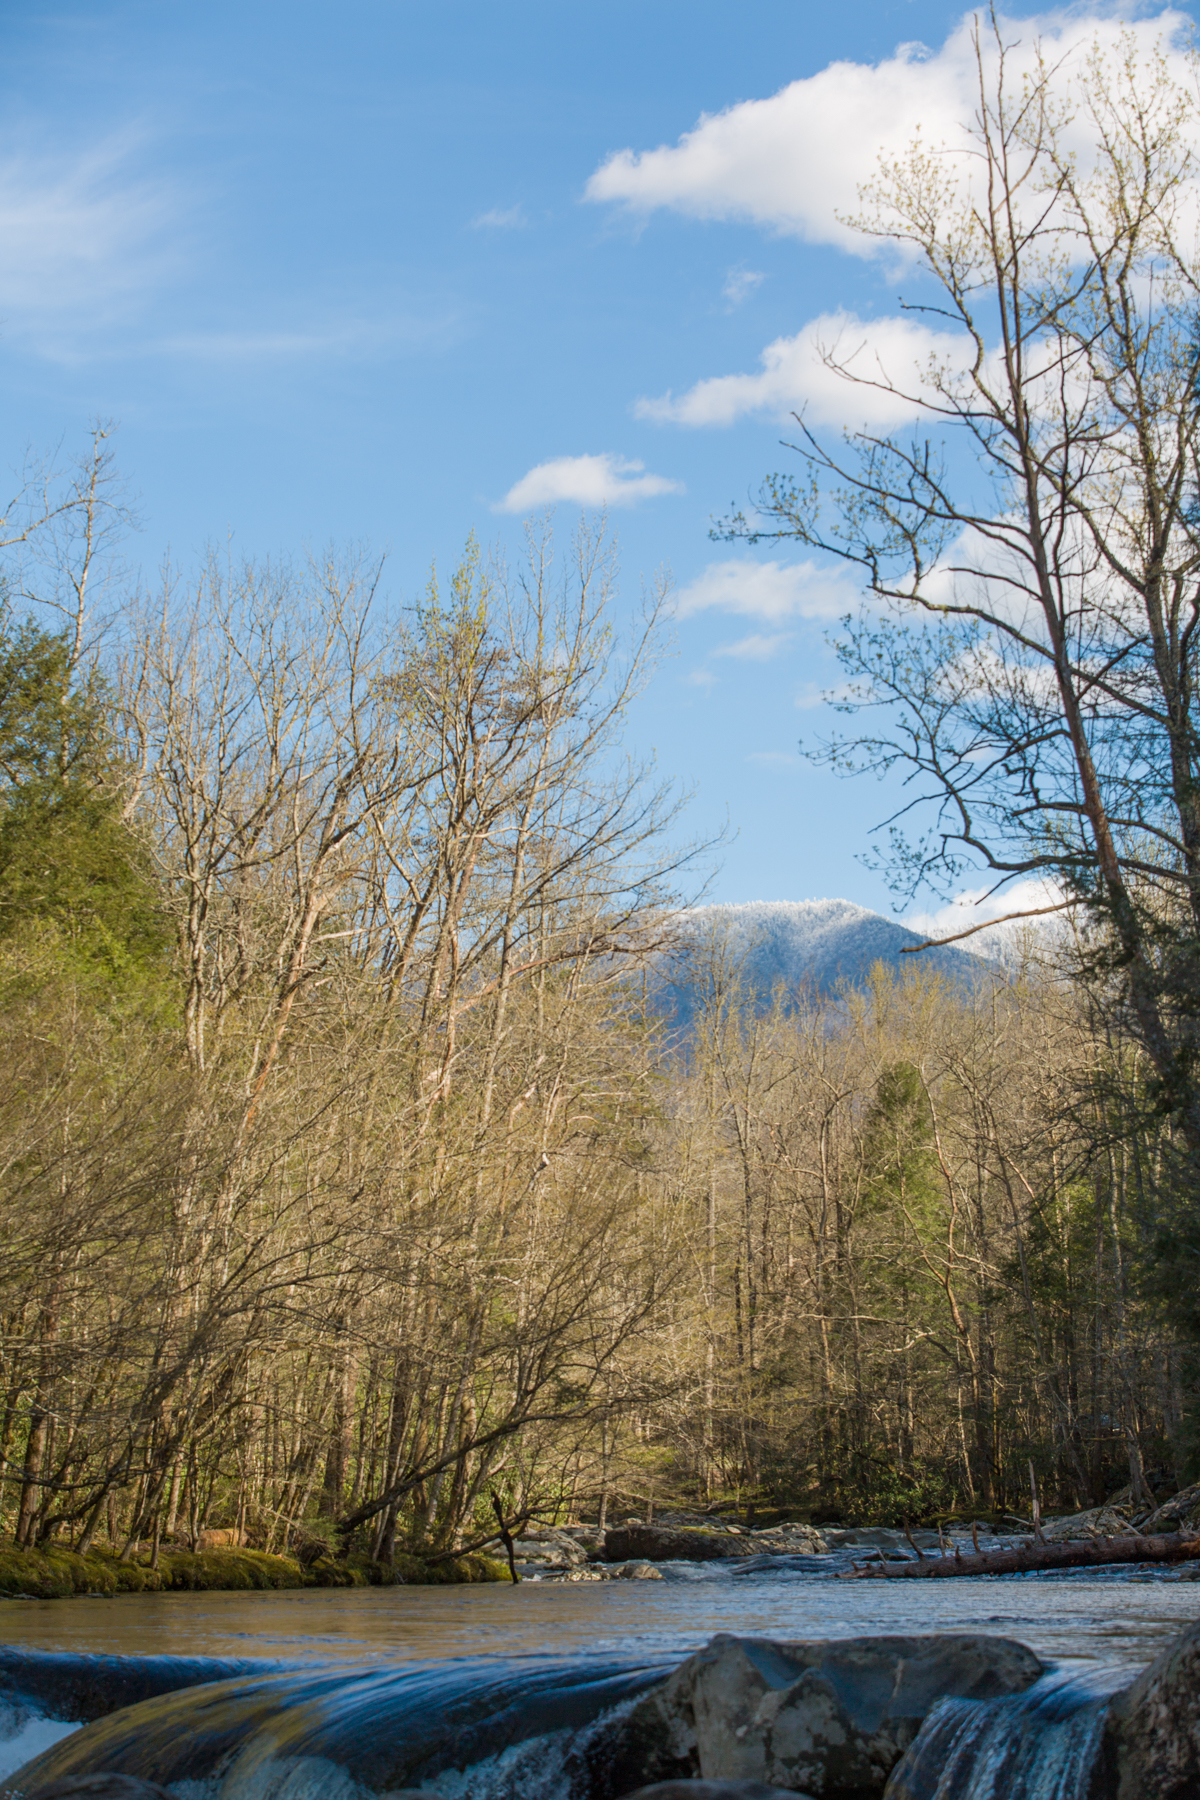 The Little Pigeon River in the Greenbrier section of the Great Smoky Mountains